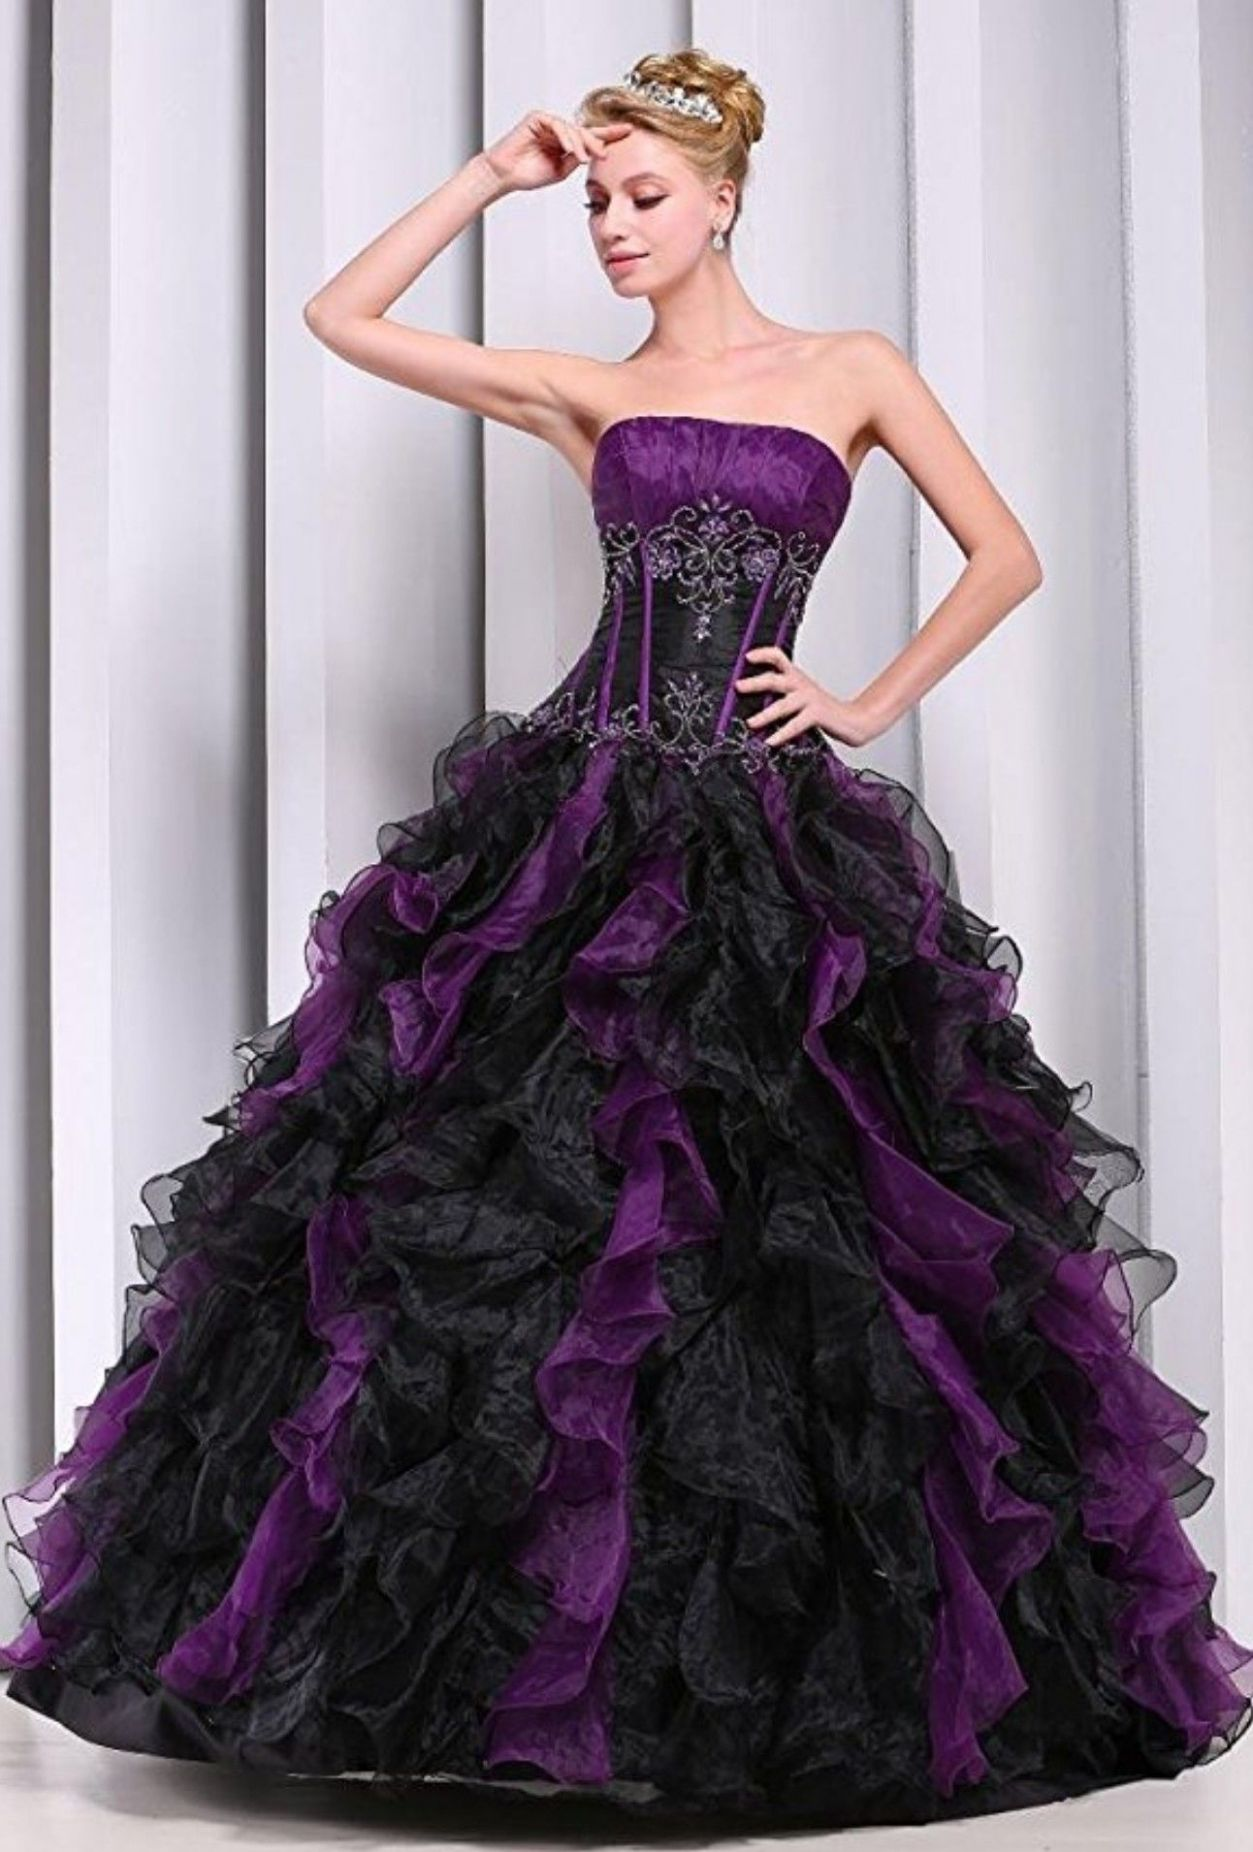 Nightmare before Christmas quince dress (With images)   Halloween ..